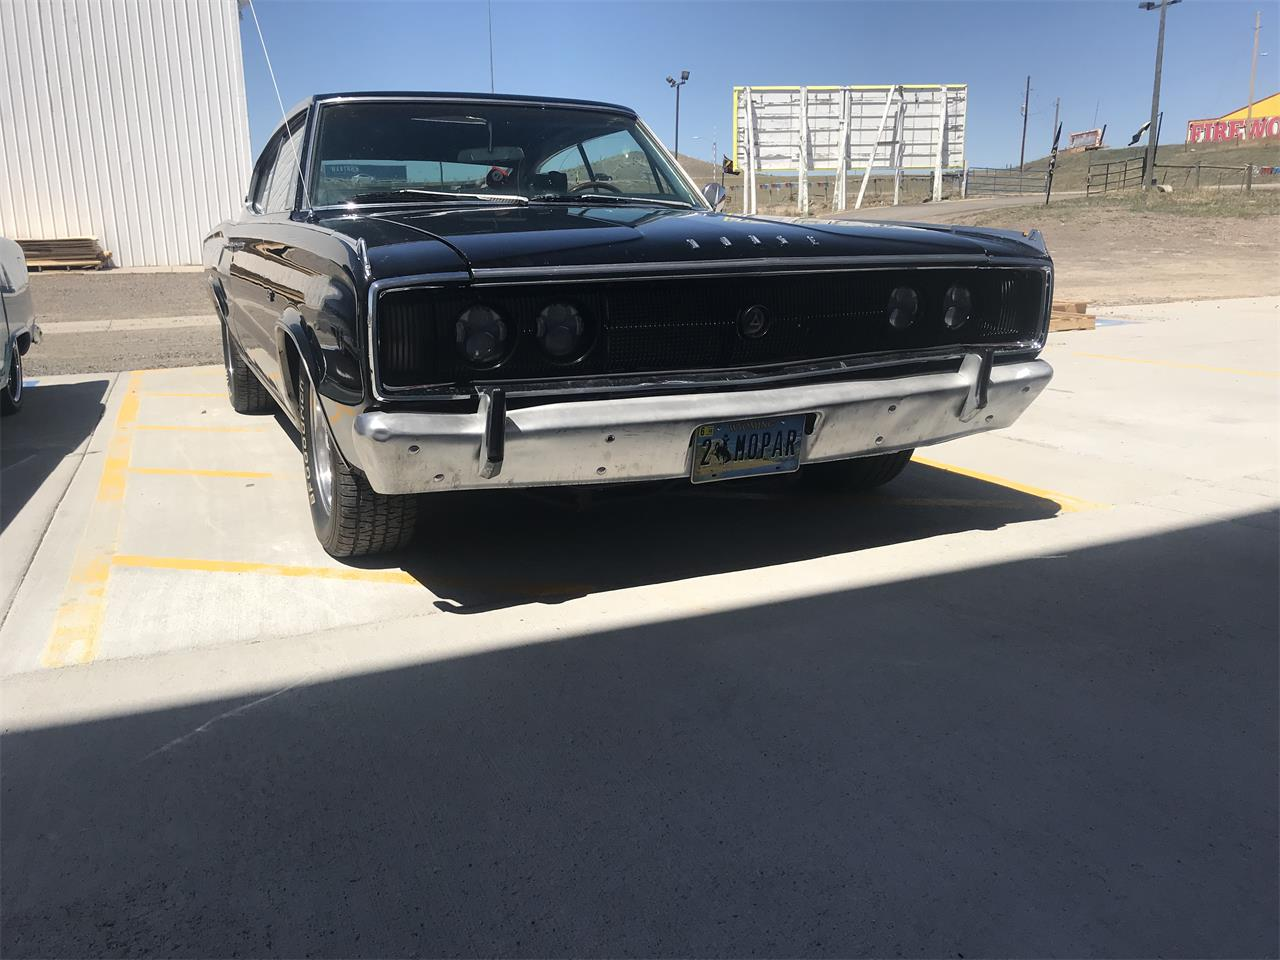 Large Picture of '67 Charger - $15,000.00 Offered by a Private Seller - NBBN